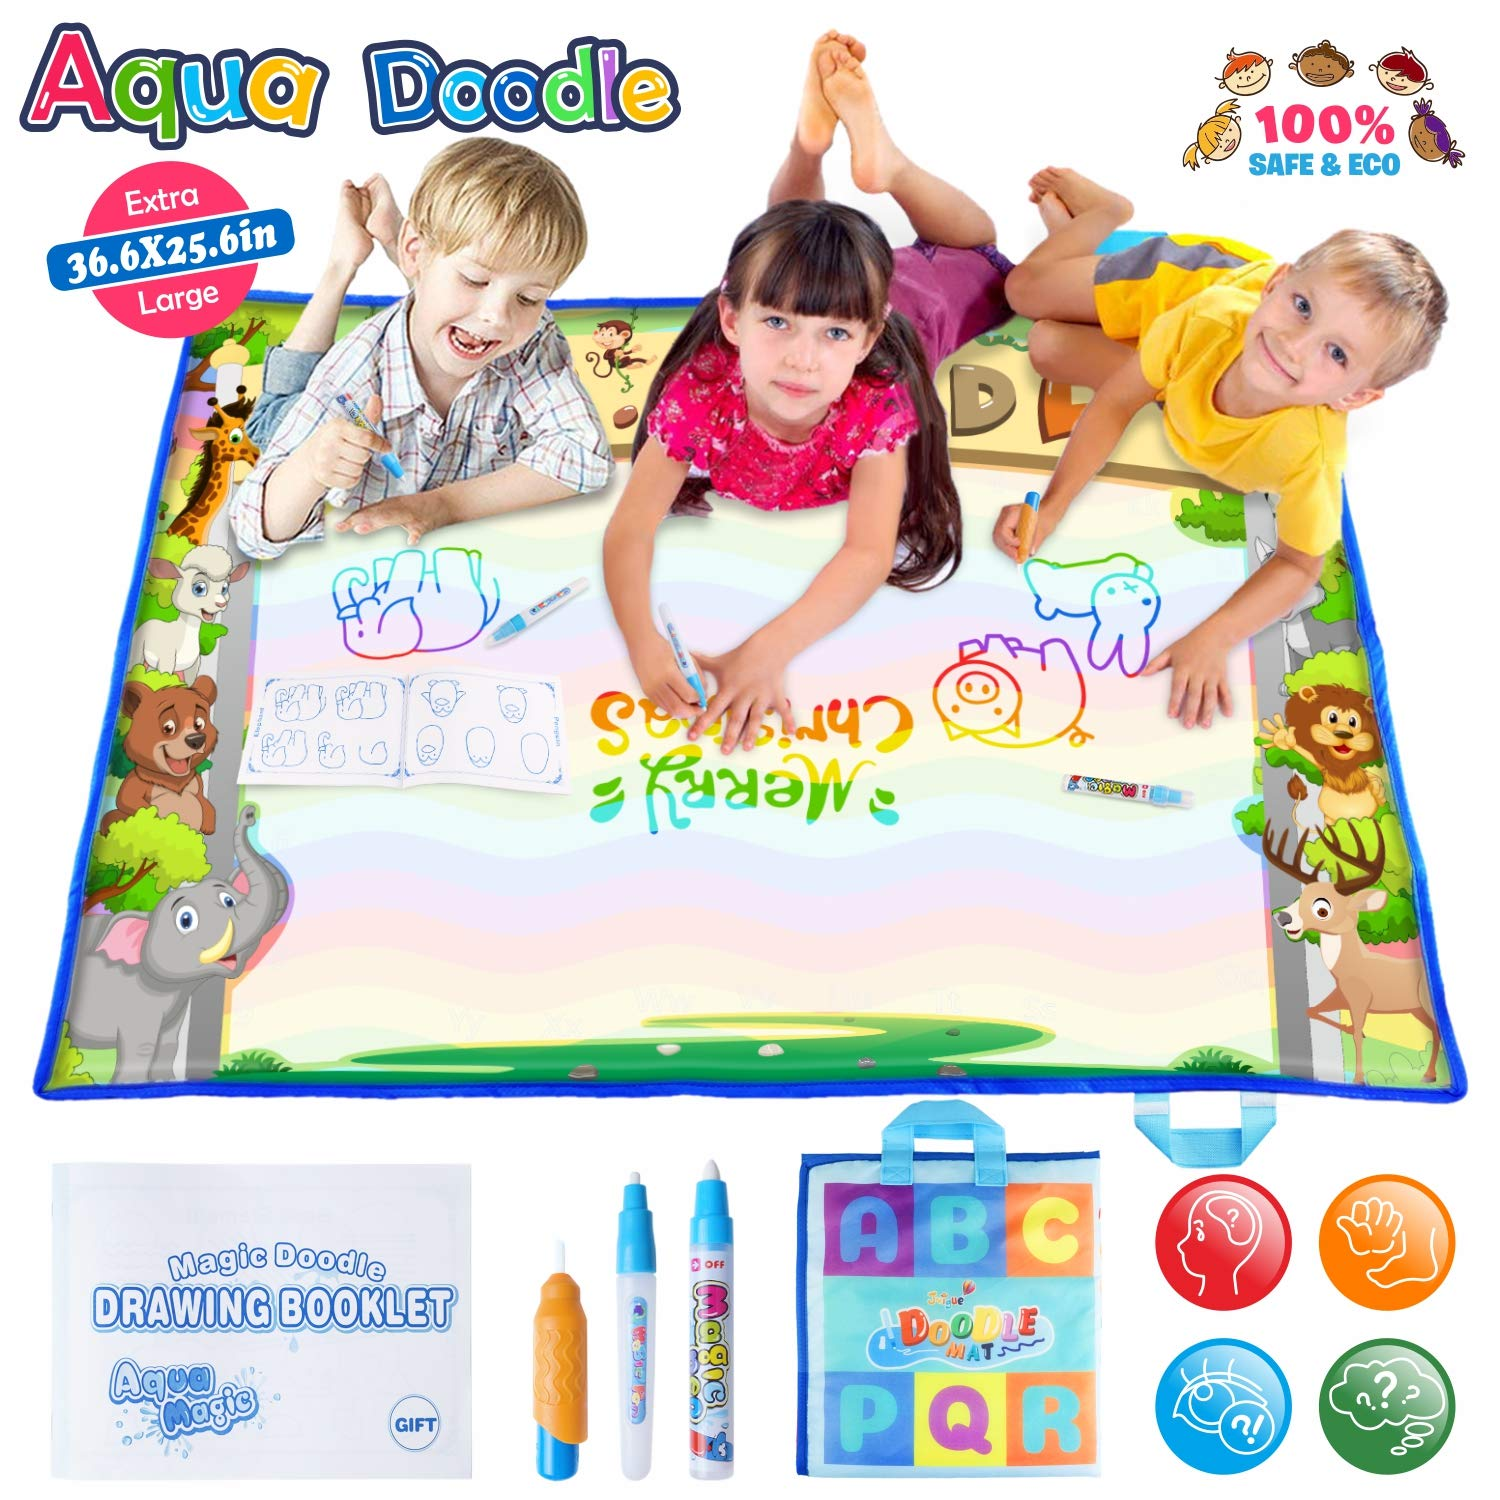 Large AquaDoodle Mat - Portable Magic Aqua Doodle Water Doodle Drawing Mat Pad with 3 Water Pens and Drawing Booklet, Kids Educational Travel Toys Gift for Boy Girl Toddlers Age 1- 6, 36.6 X 25.6 Inch